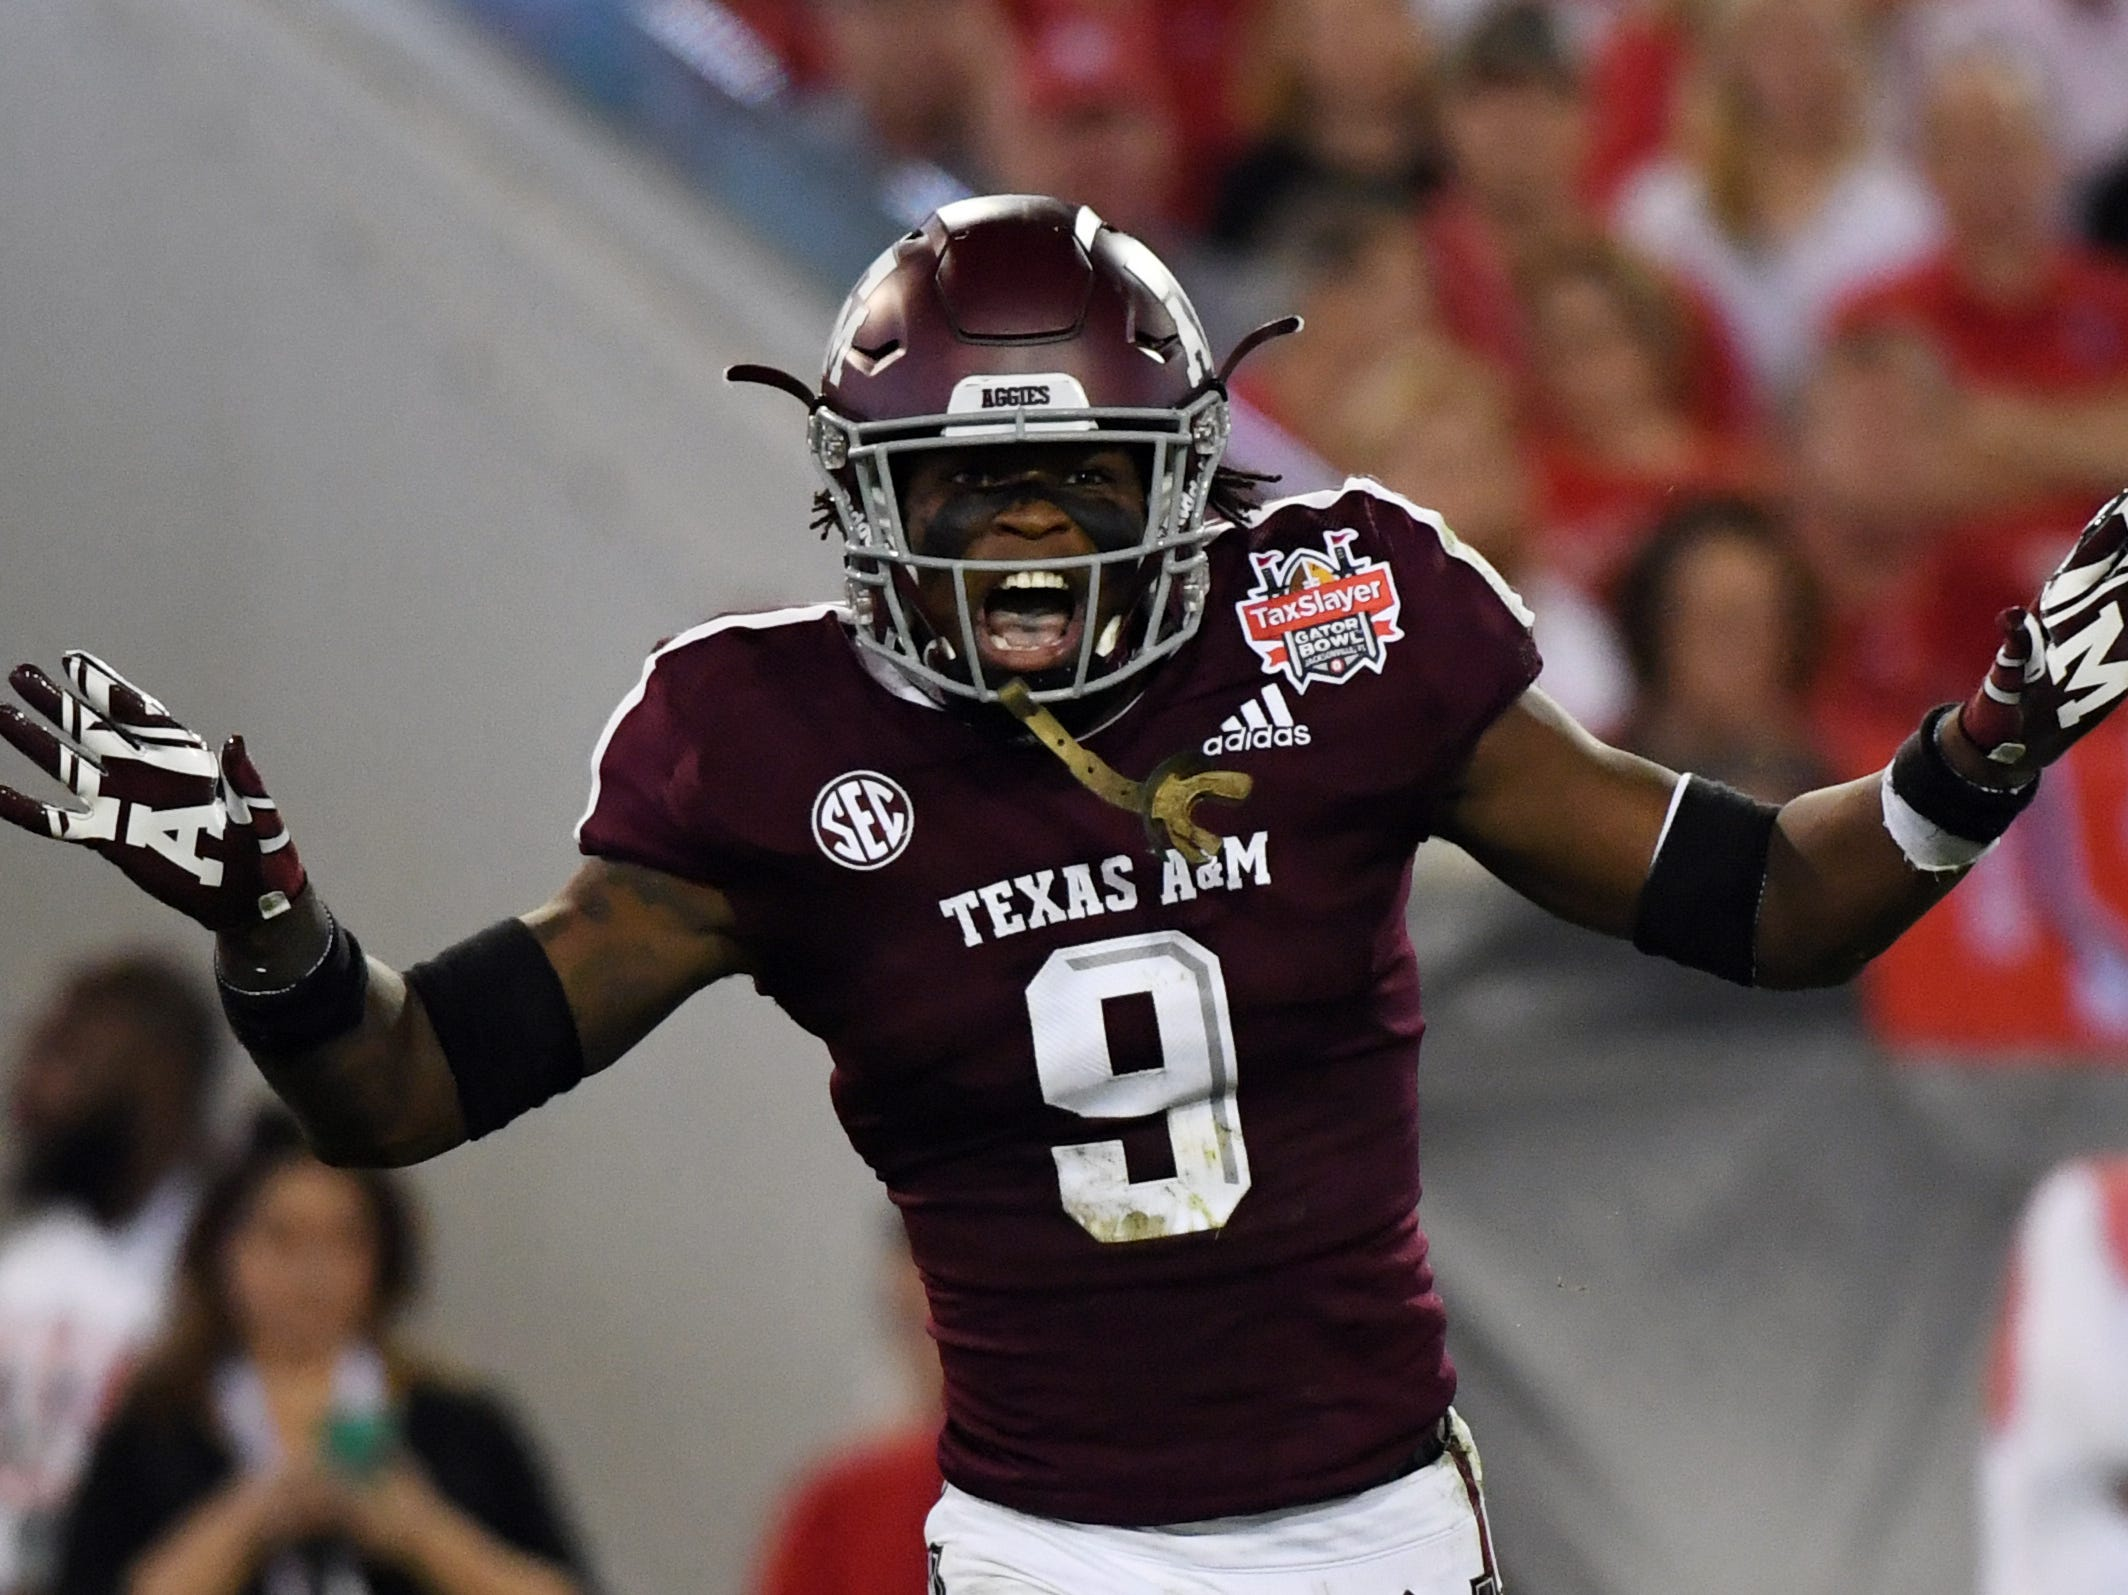 Texas A&M Aggies defensive back Leon O'Neal Jr. (9) reacts after a play against the North Carolina State Wolfpack during the first quarter of the Gator Bowl.